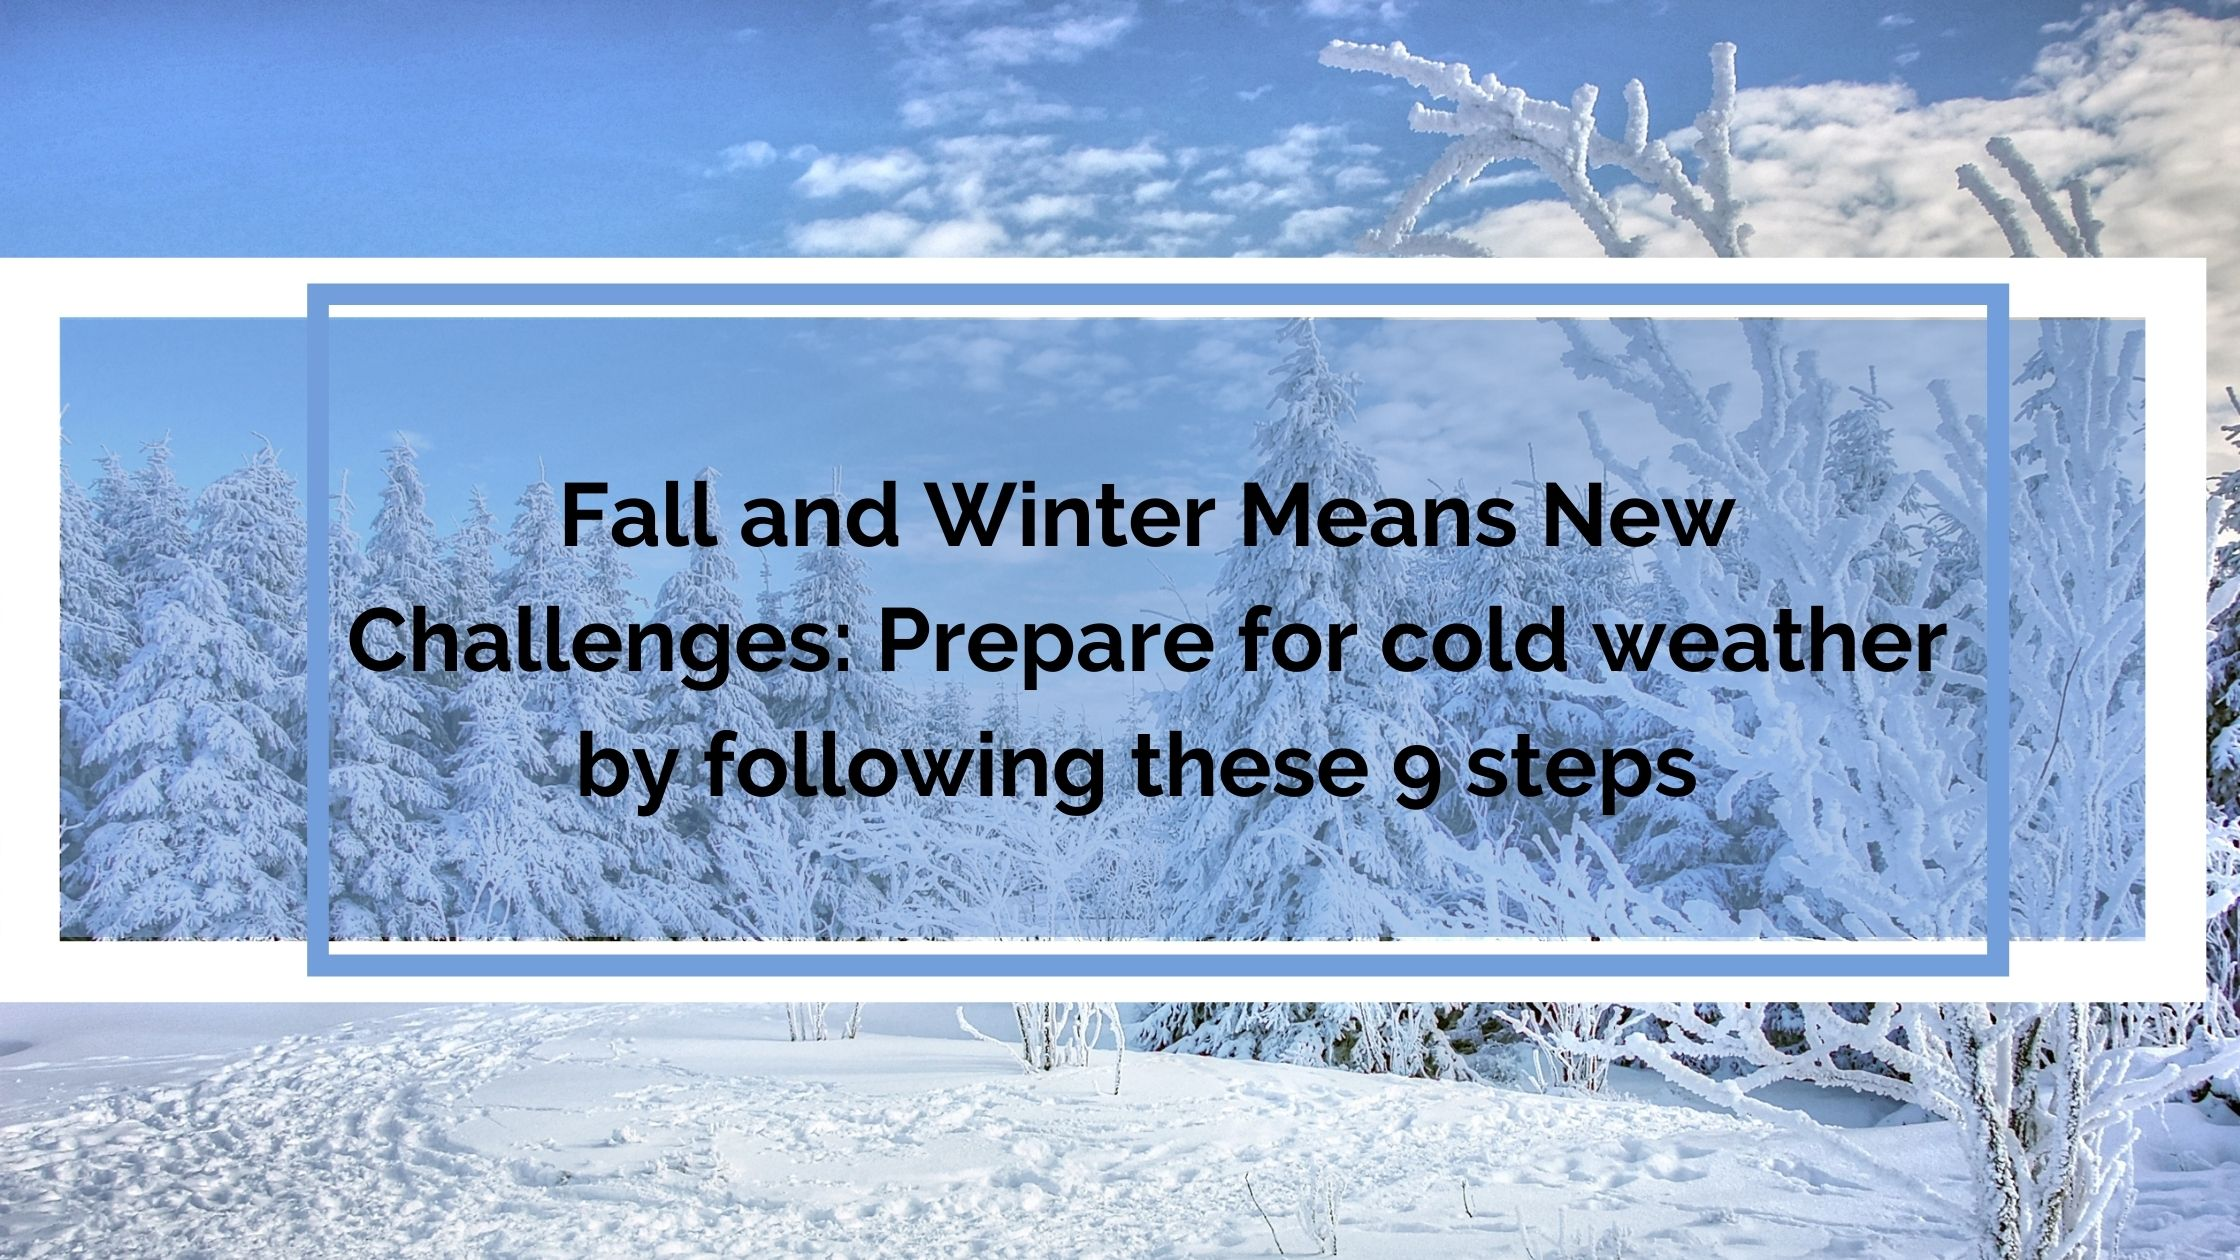 Fall and Winter Means New Challenges Prepare for cold weather by following these 9 steps